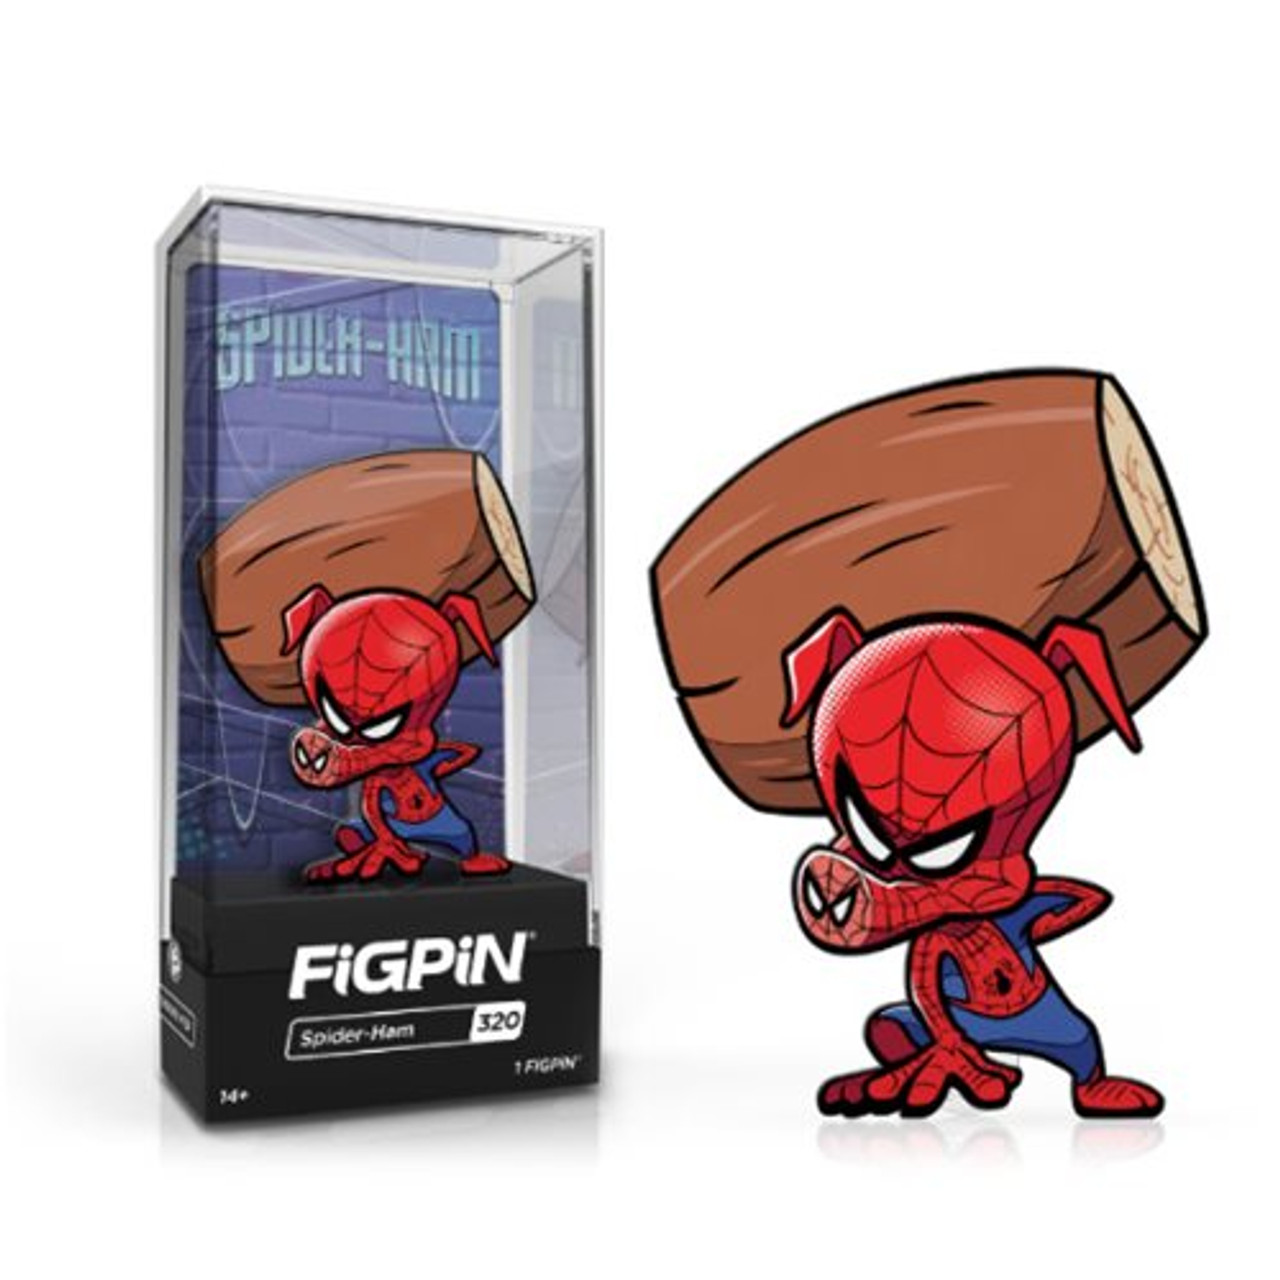 Enamel Pin Spider Man Web Lapel Pin Super Hero Tie Tack Spiderman Husband Gifts for Dad Gifts for Him Spider-Man Spiderweb